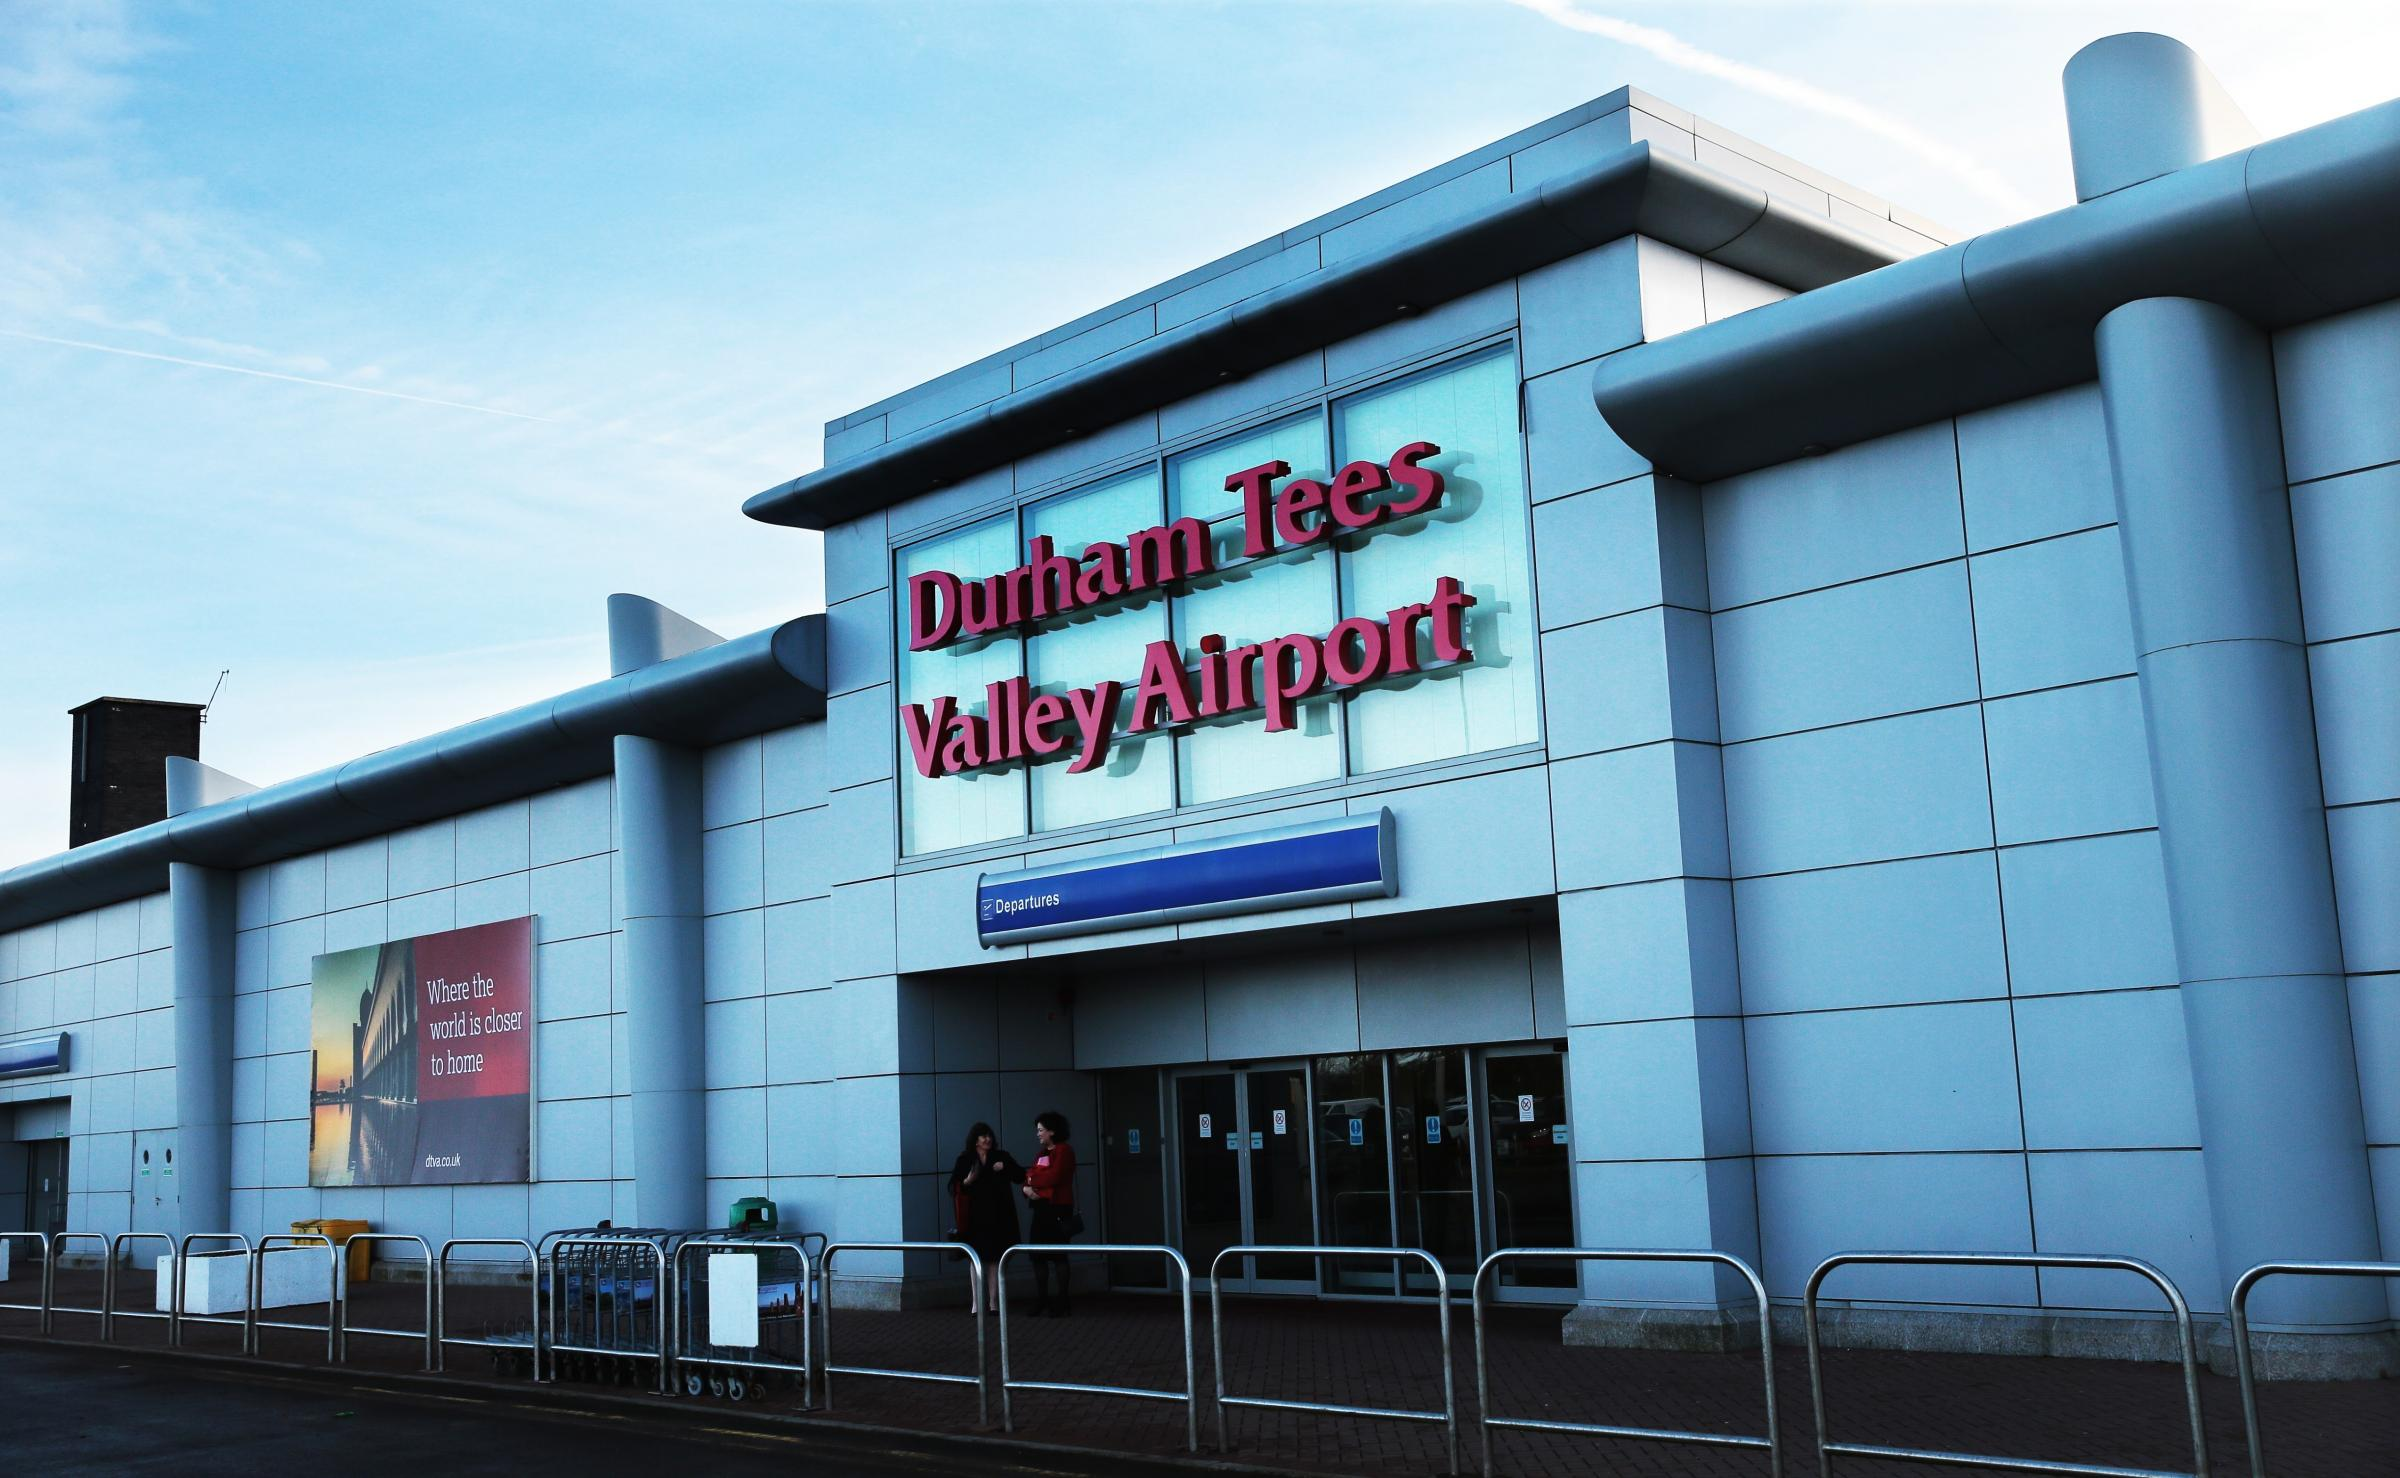 Name poll is part of his £40m plan to acquire Peel Group's 89 per cent shareholding in Durham Tees Valley Airport